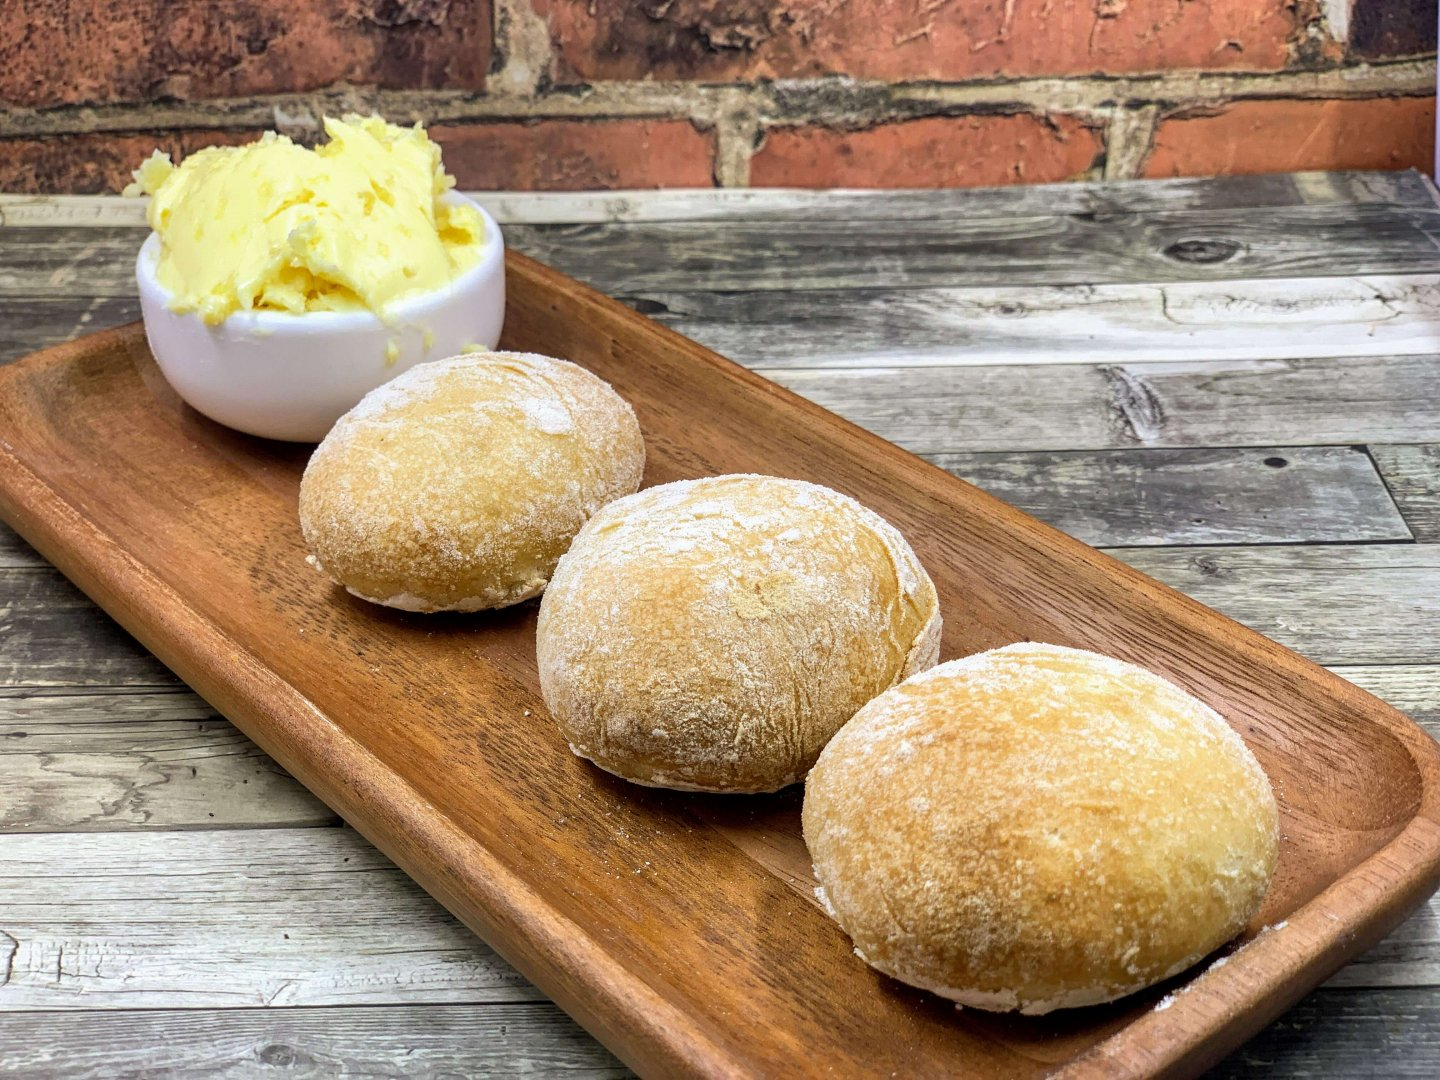 Dough balls with garlic butter